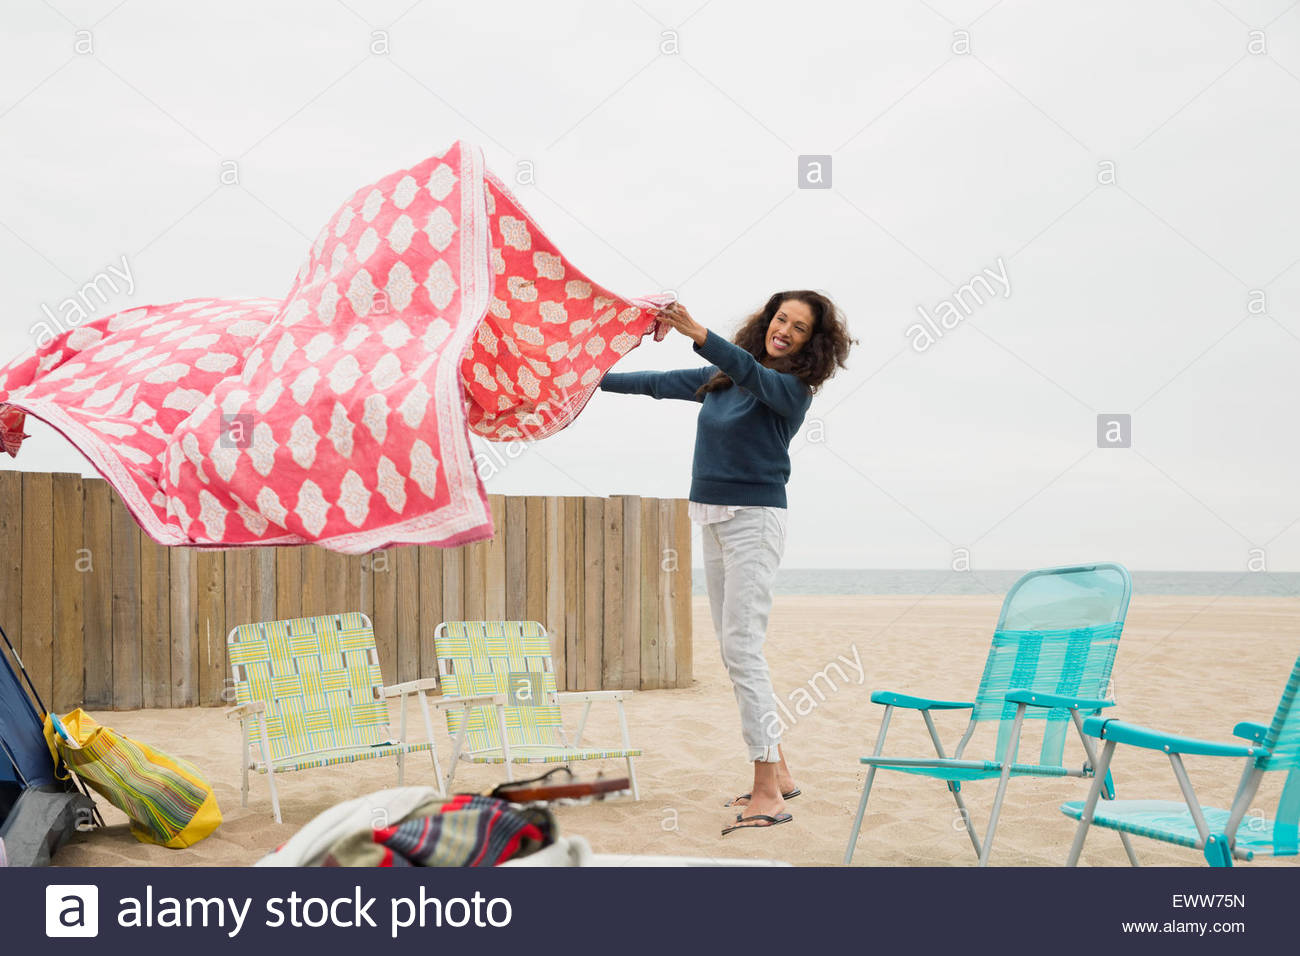 Woman spreading picnic blanket at beach - Stock Image